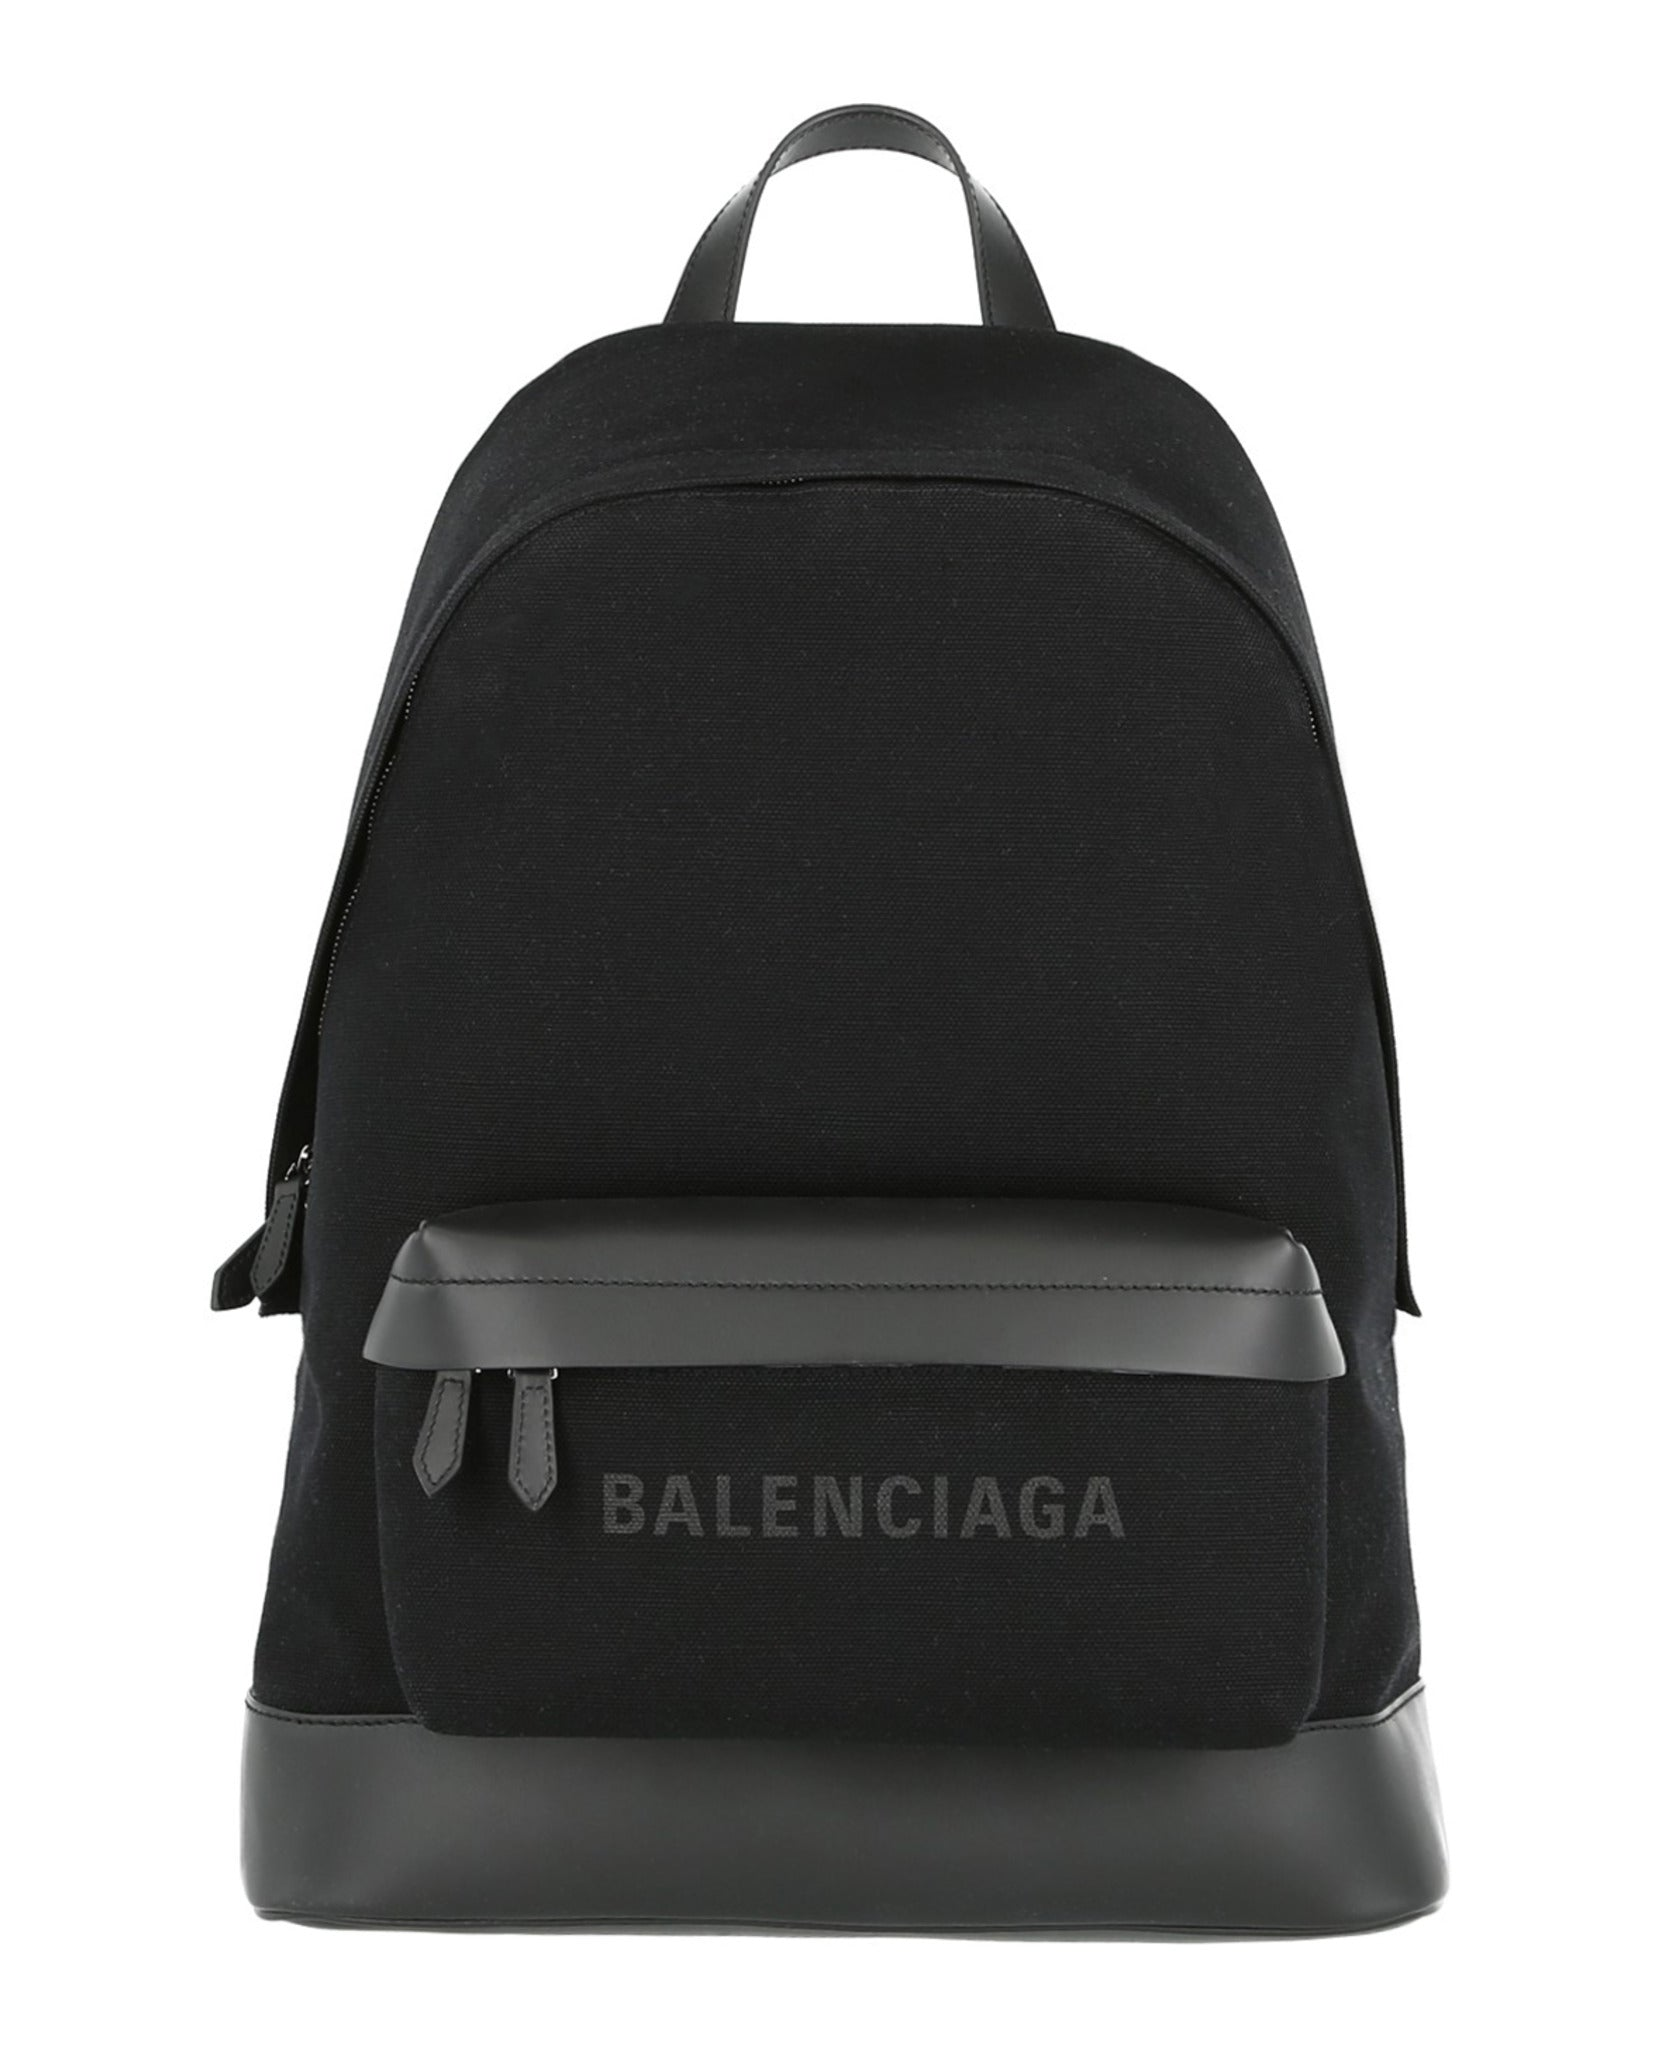 b08176a0d Balenciaga Womens Navy Backpack Handbag | Madaluxe Vault – MadaLuxe ...